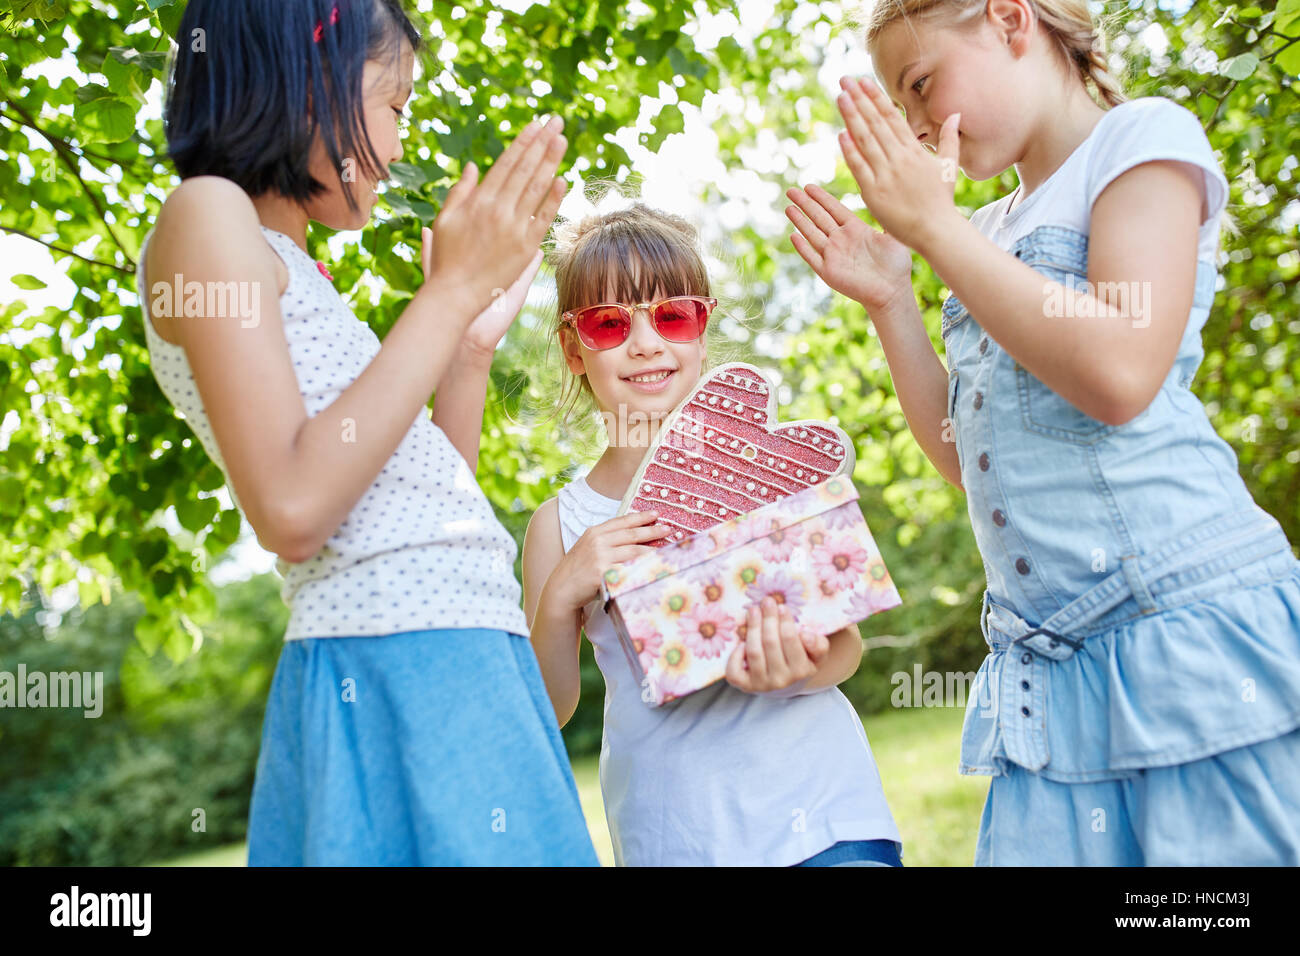 Applause for birthday girl at birthday party - Stock Image